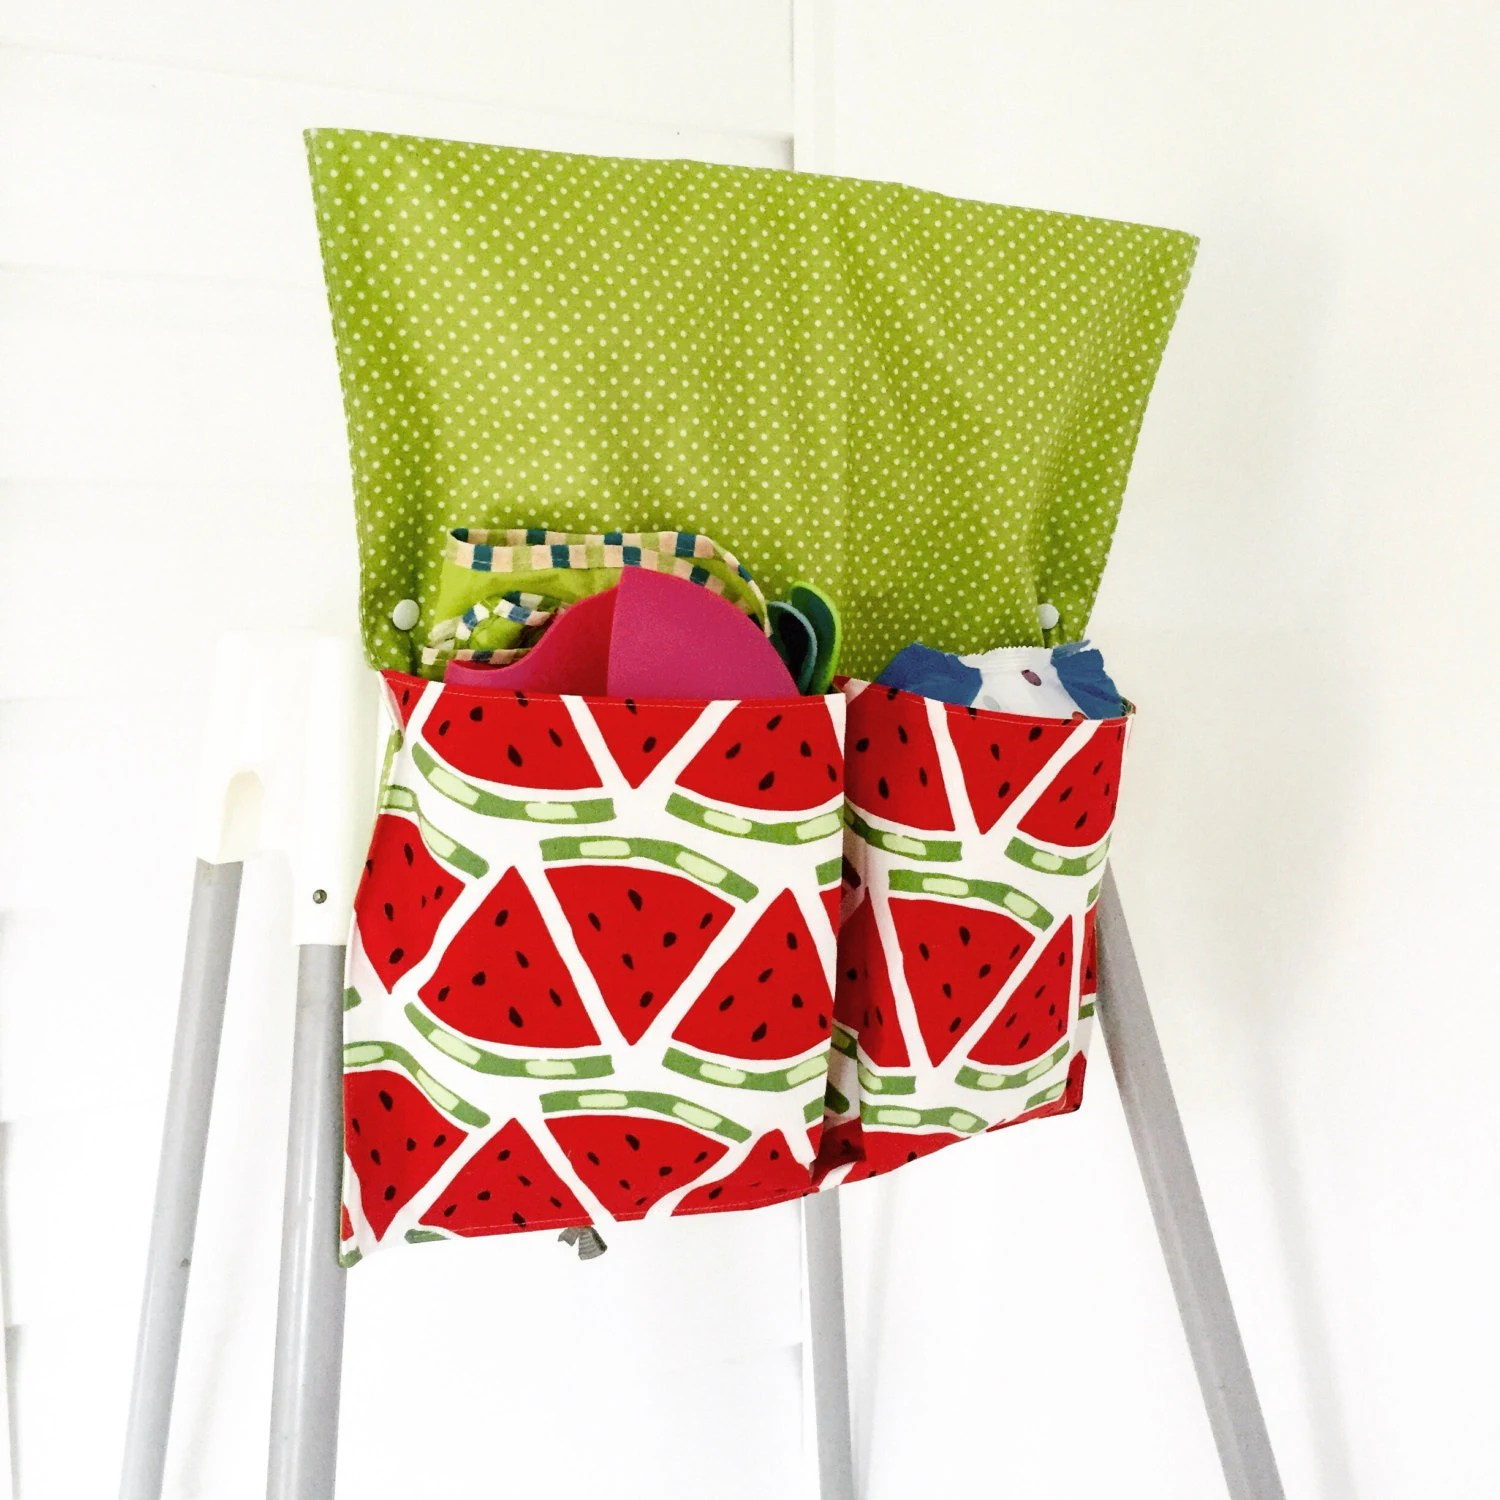 bag high chair recliner chairs on wheels caddy best suited for ikea